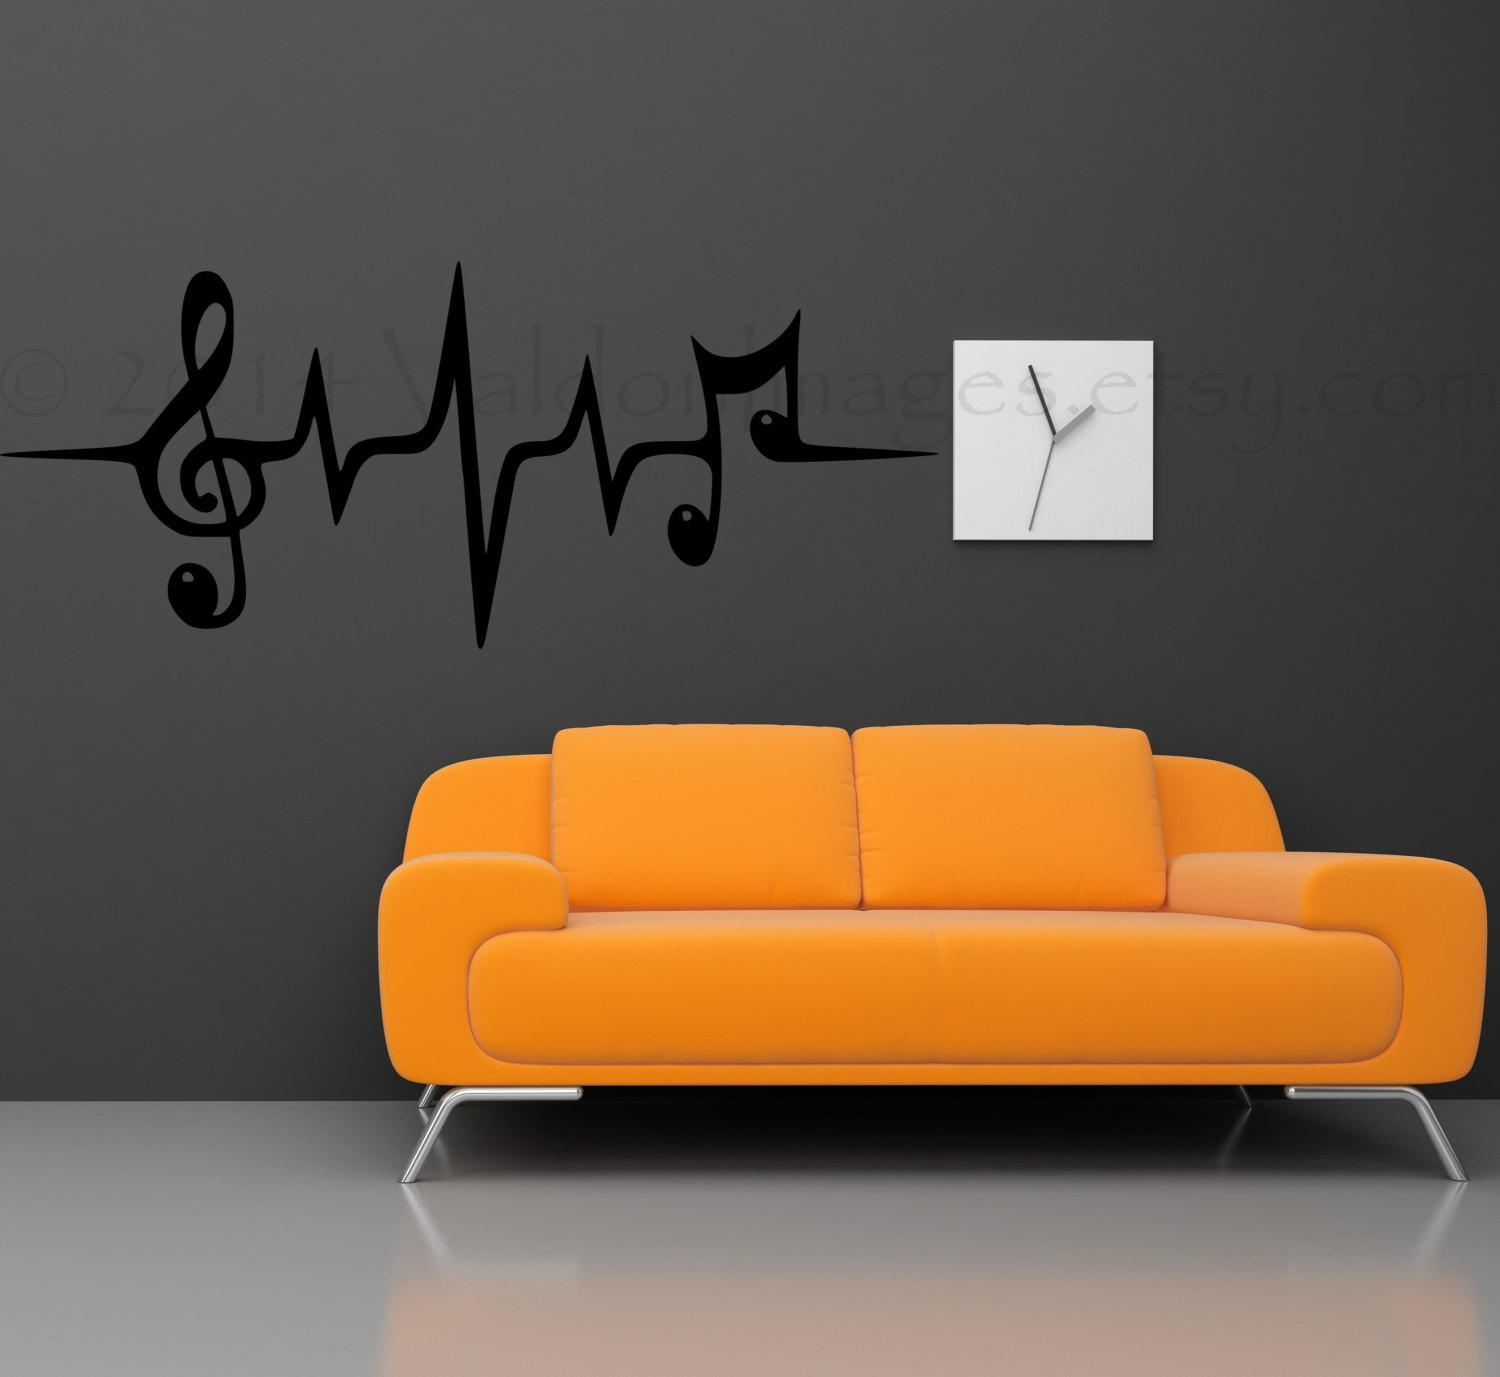 Music Note Wall Decal Music Wall Decal Heartbeat Wall Within Music Note Wall Art (View 3 of 20)